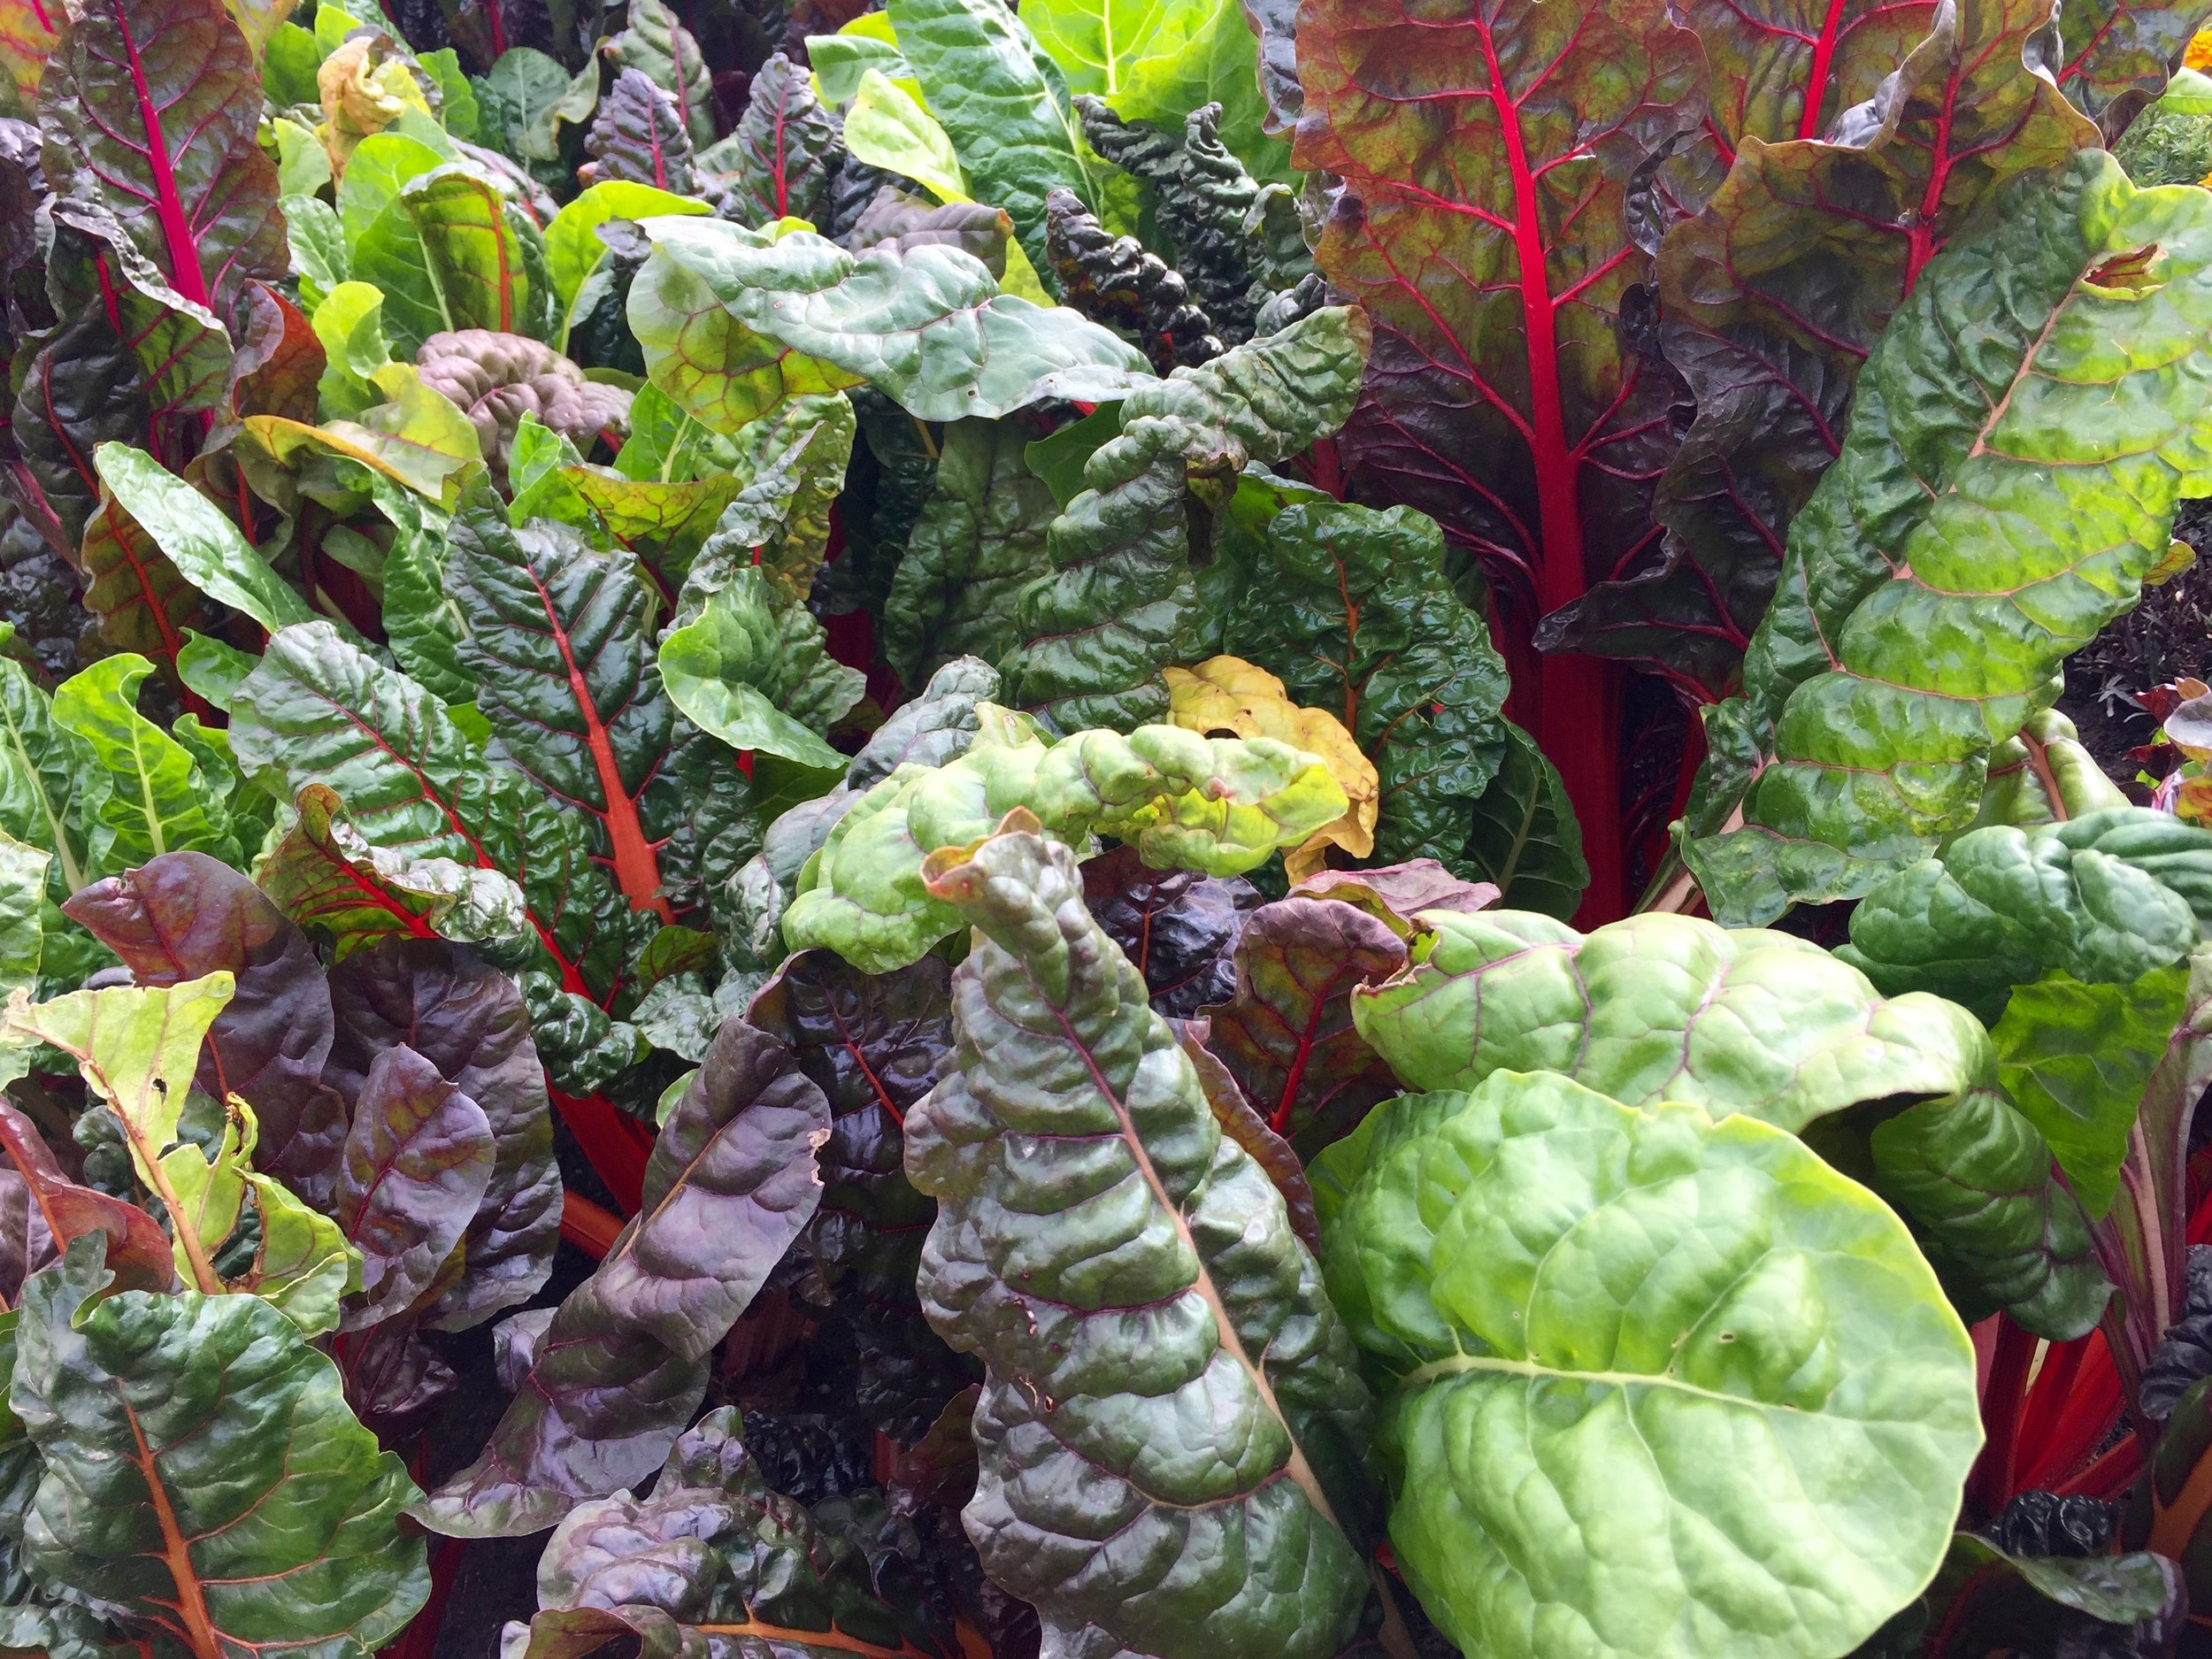 Swiss chard and other leafy greens are loaded with vitamins and minerals our bodies need. Is anyone else craving a salad? ( Pixabay.com photo )